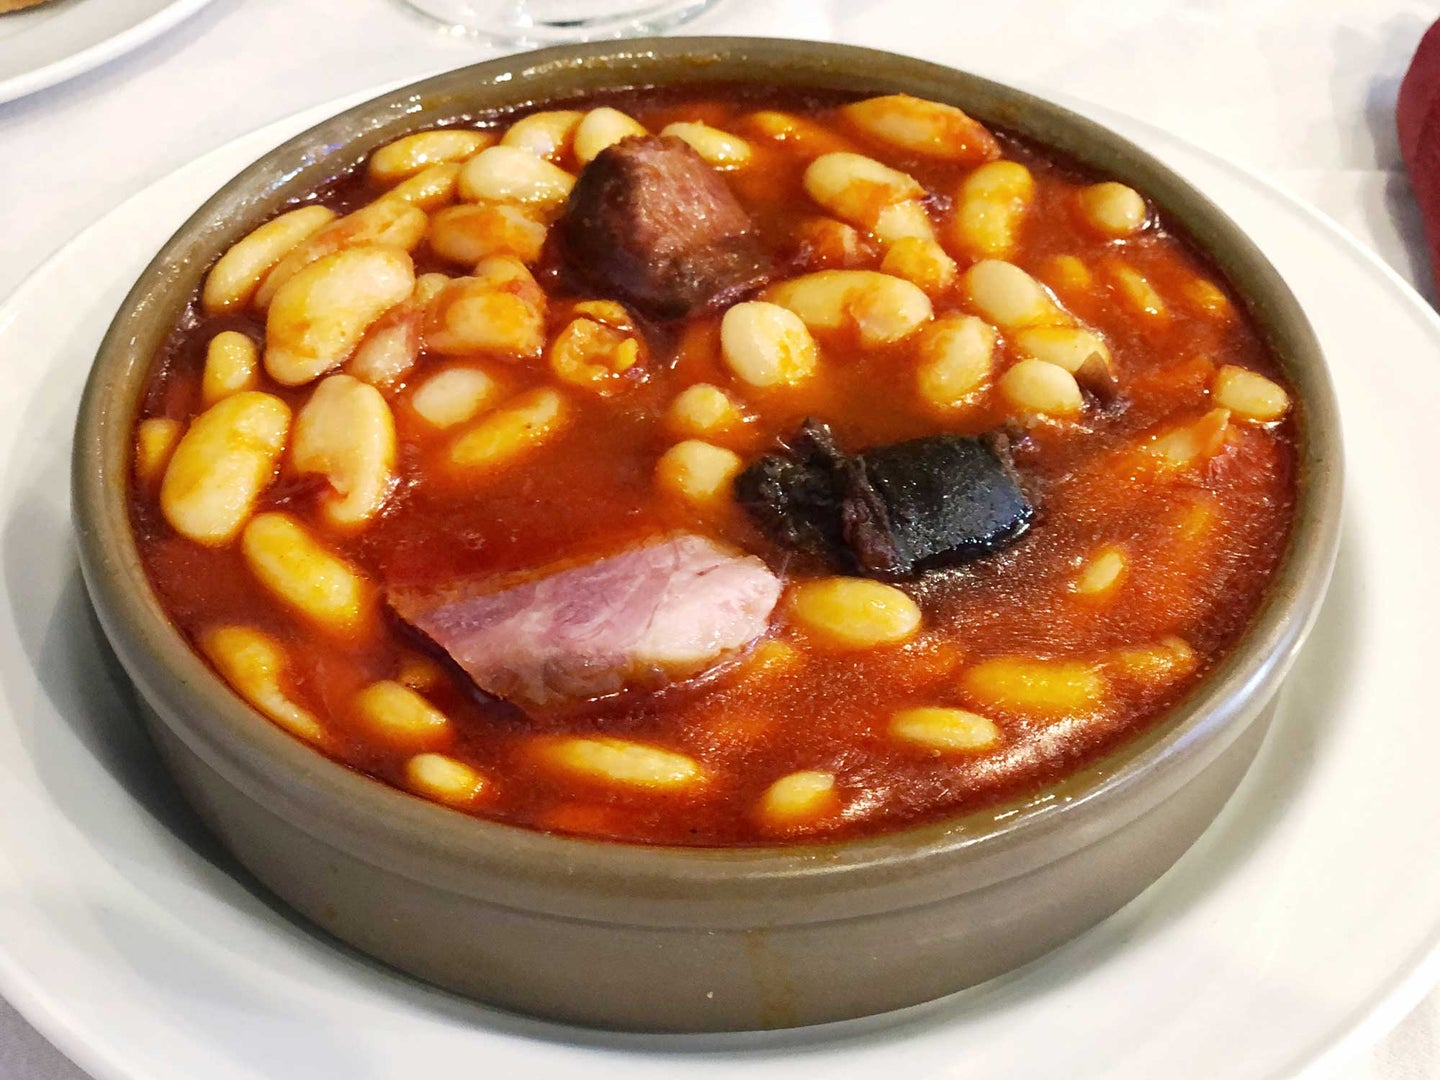 Fabada Asturiana - A comforting pork-and-beans stew from northern Spain.